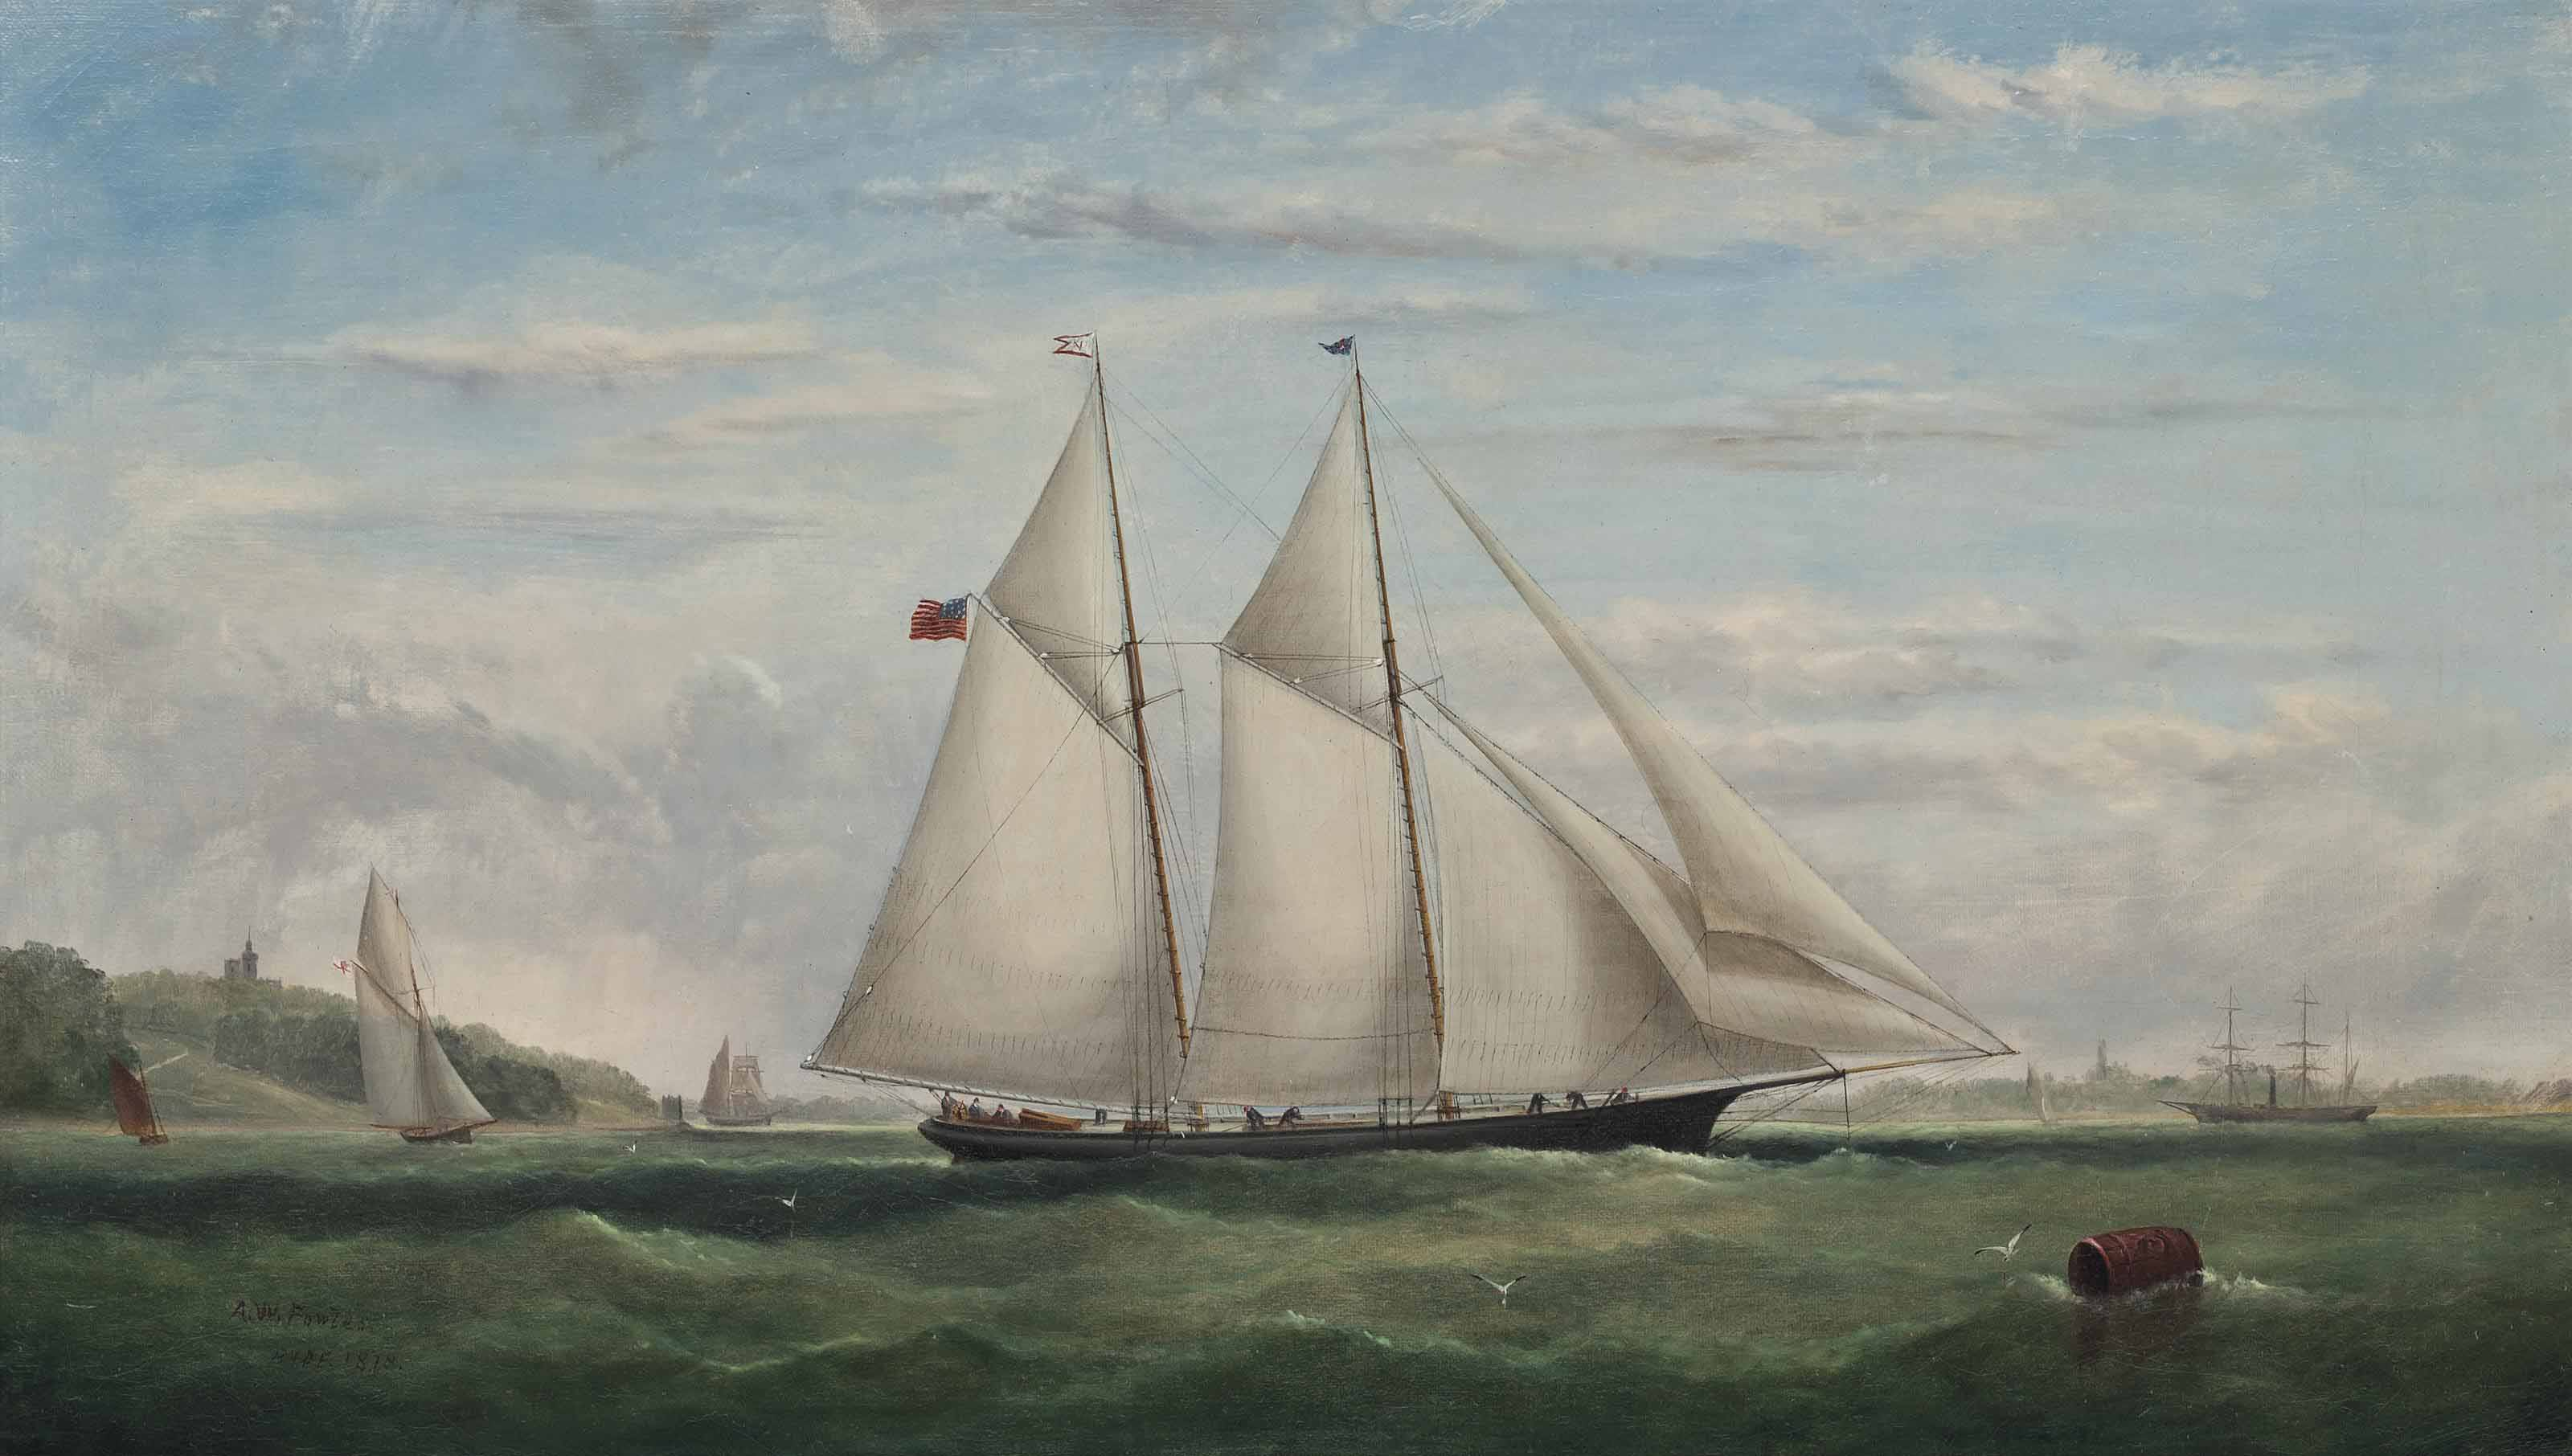 A schooner yacht of the New York Yacht Club racing off Ryde, Isle of Wight